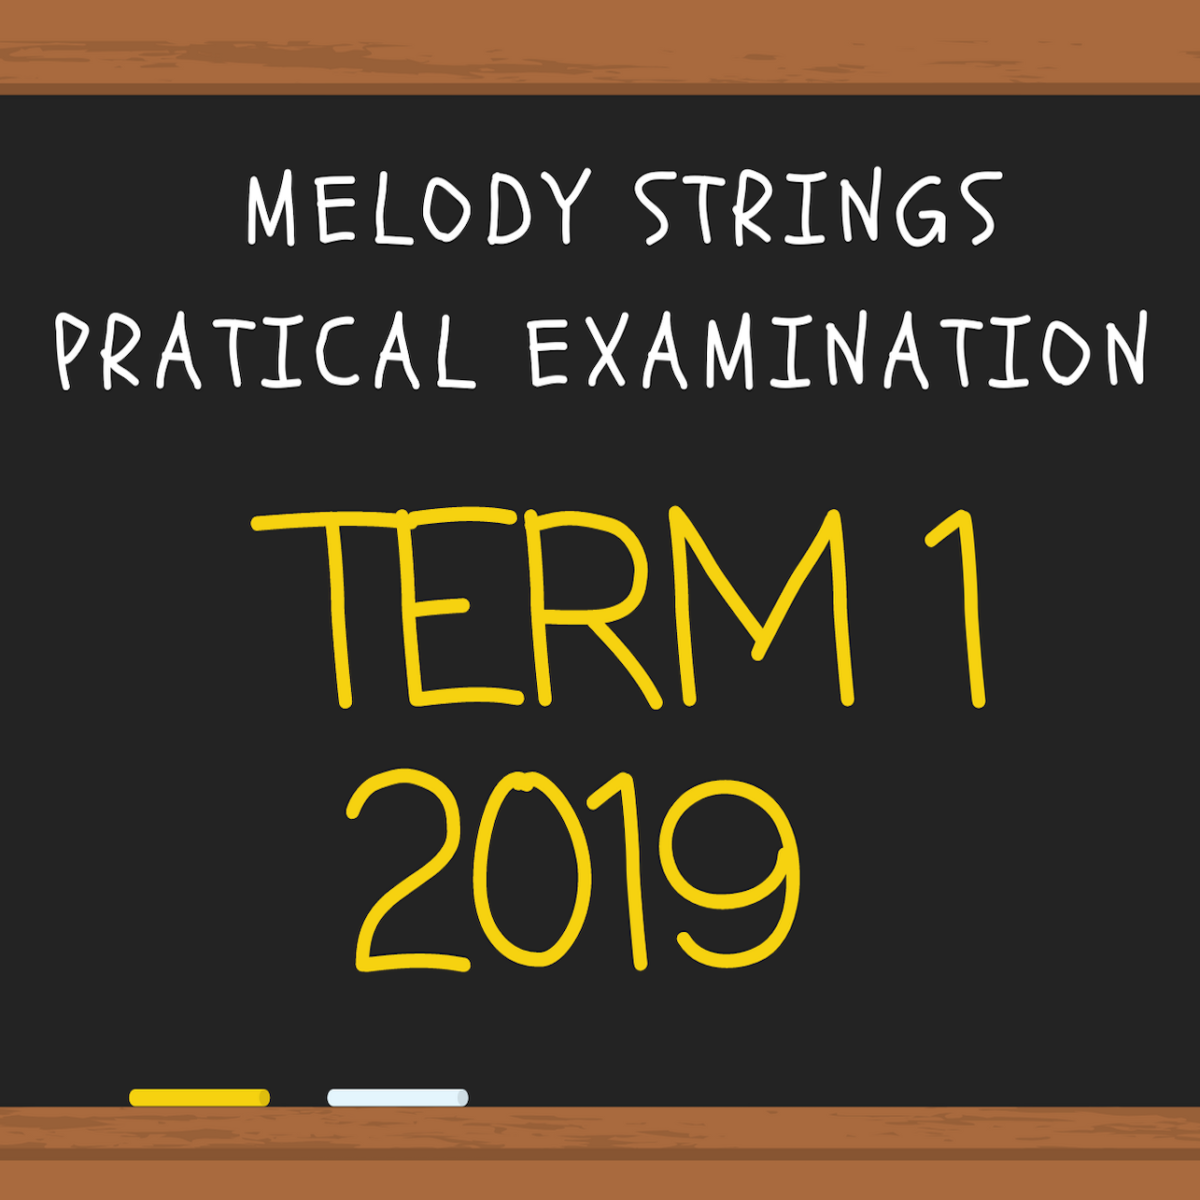 2019 Term 1 Melody Strings' internal practical examination